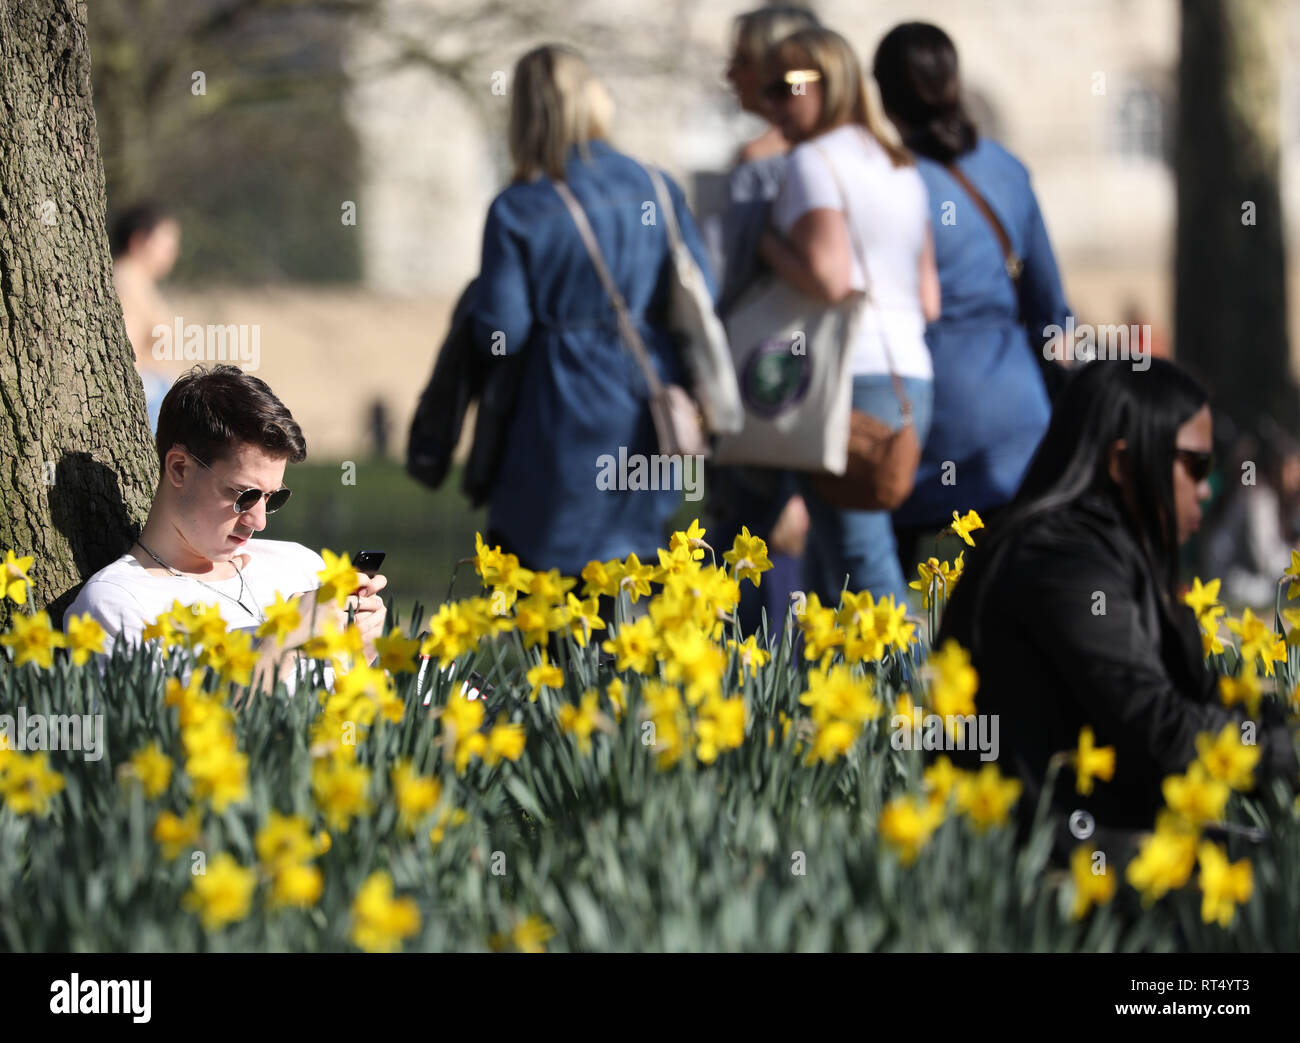 Hot Weather February 2019 Daffodils in  St James' Park as people  enjoy the sunshine   picture by Gavin Rodgers/ Pixel8000 27.2.19 - Stock Image